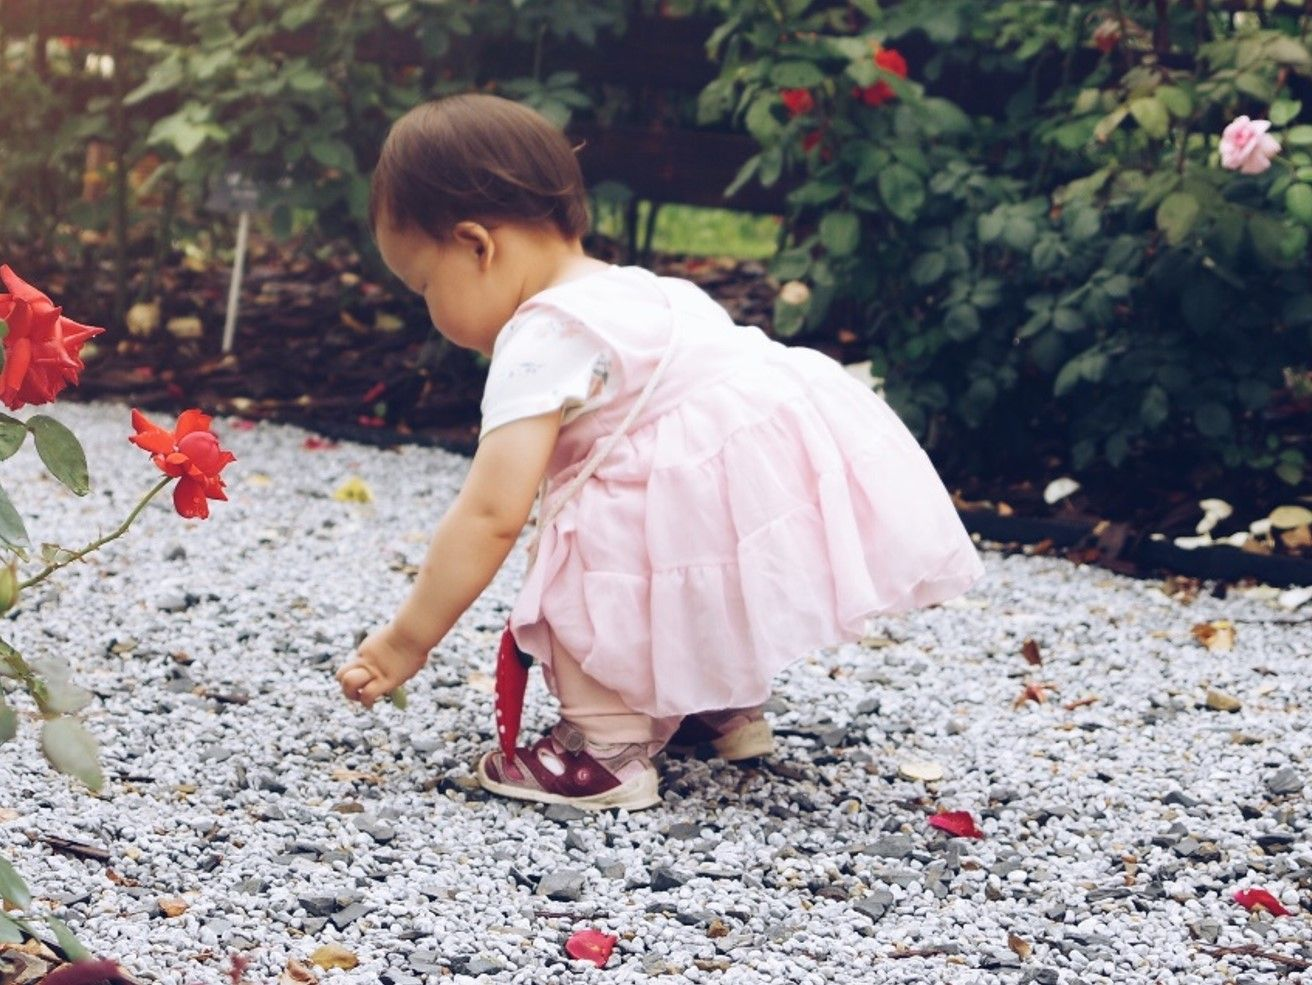 Is your little baby entering toddlerhood with the tantrums that often come with? 18 month old tantrums are common for toddlers.